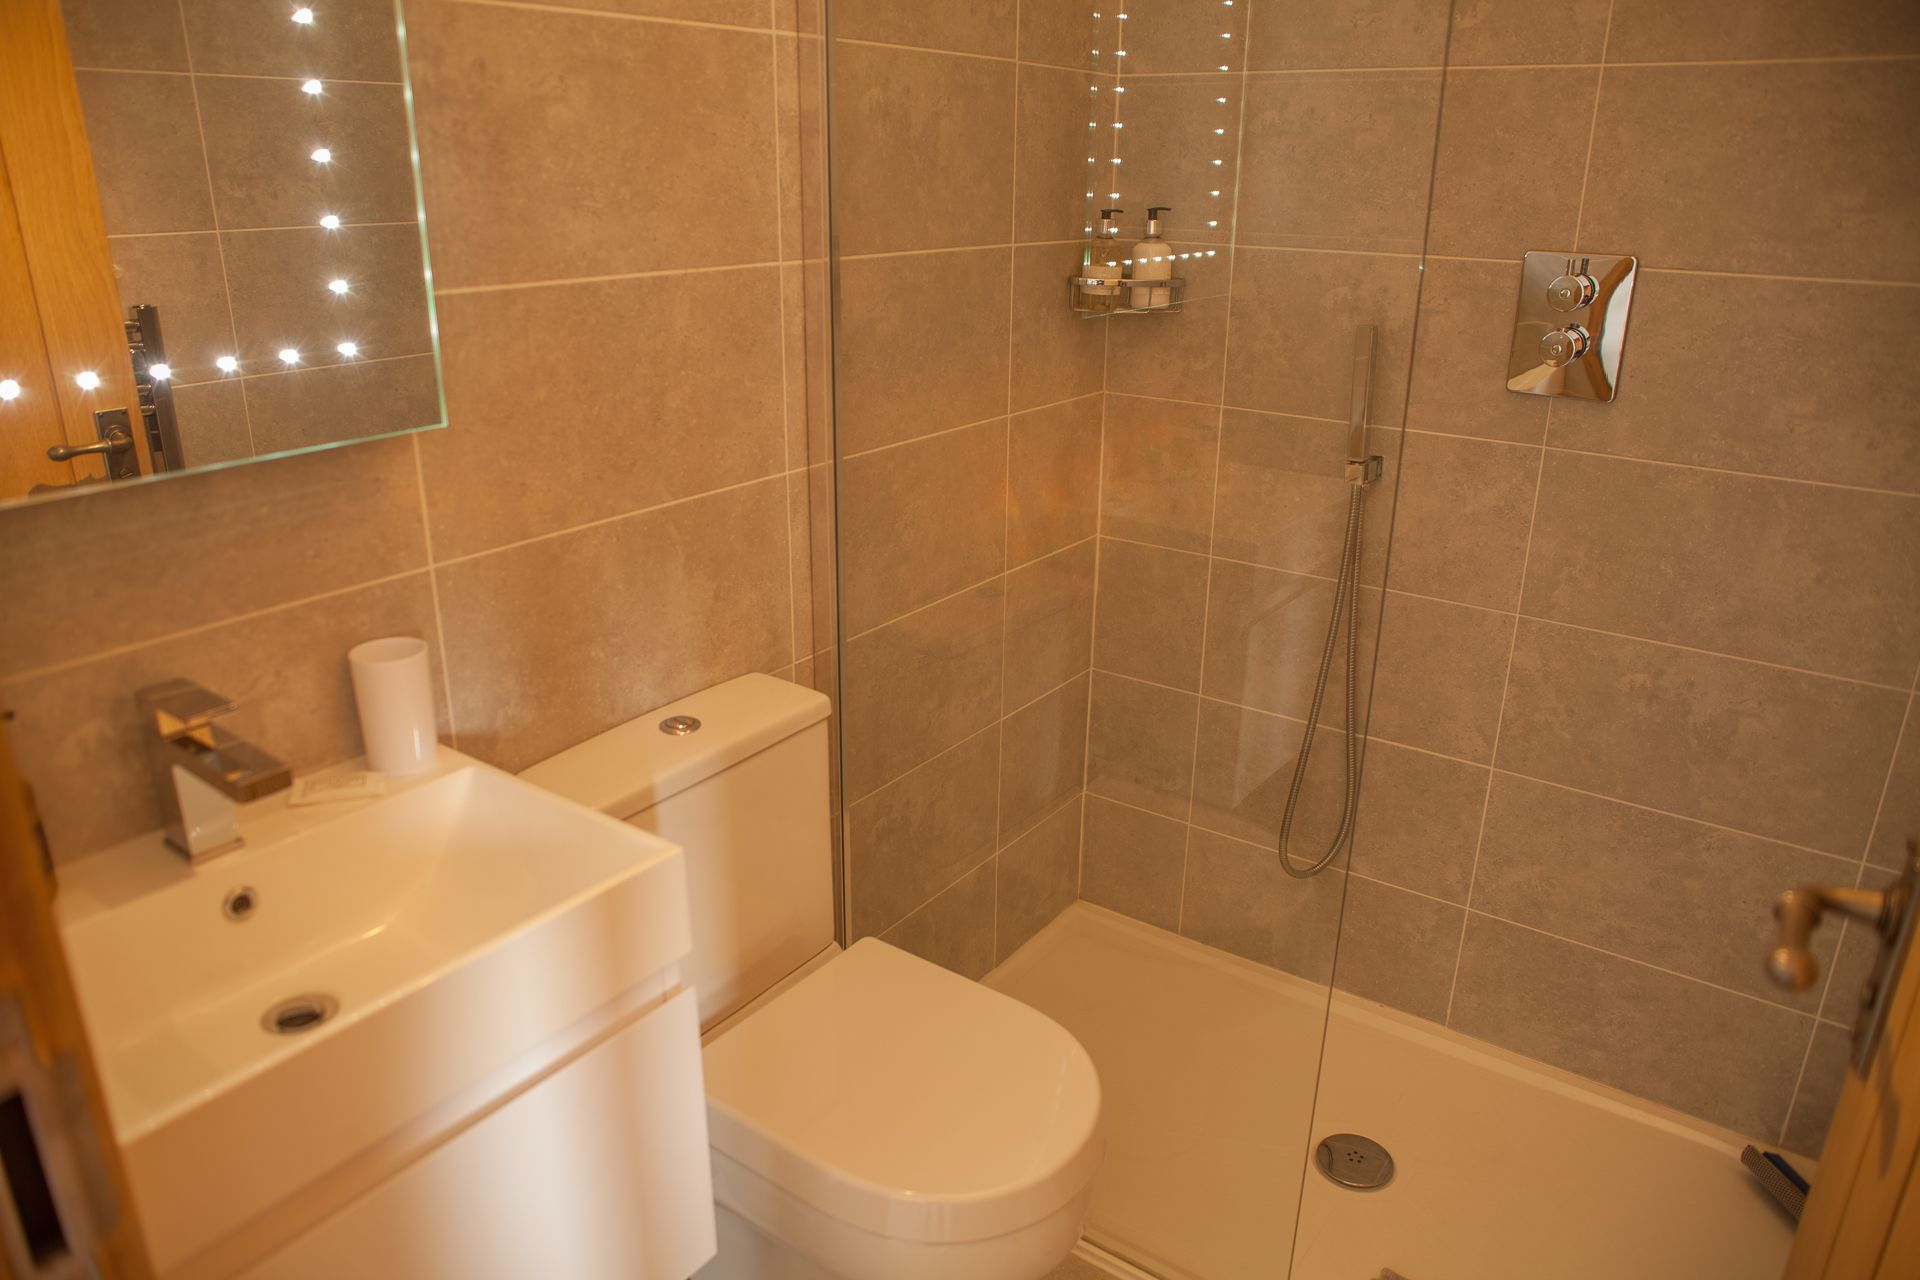 First floor: En-suite with bath and separate shower